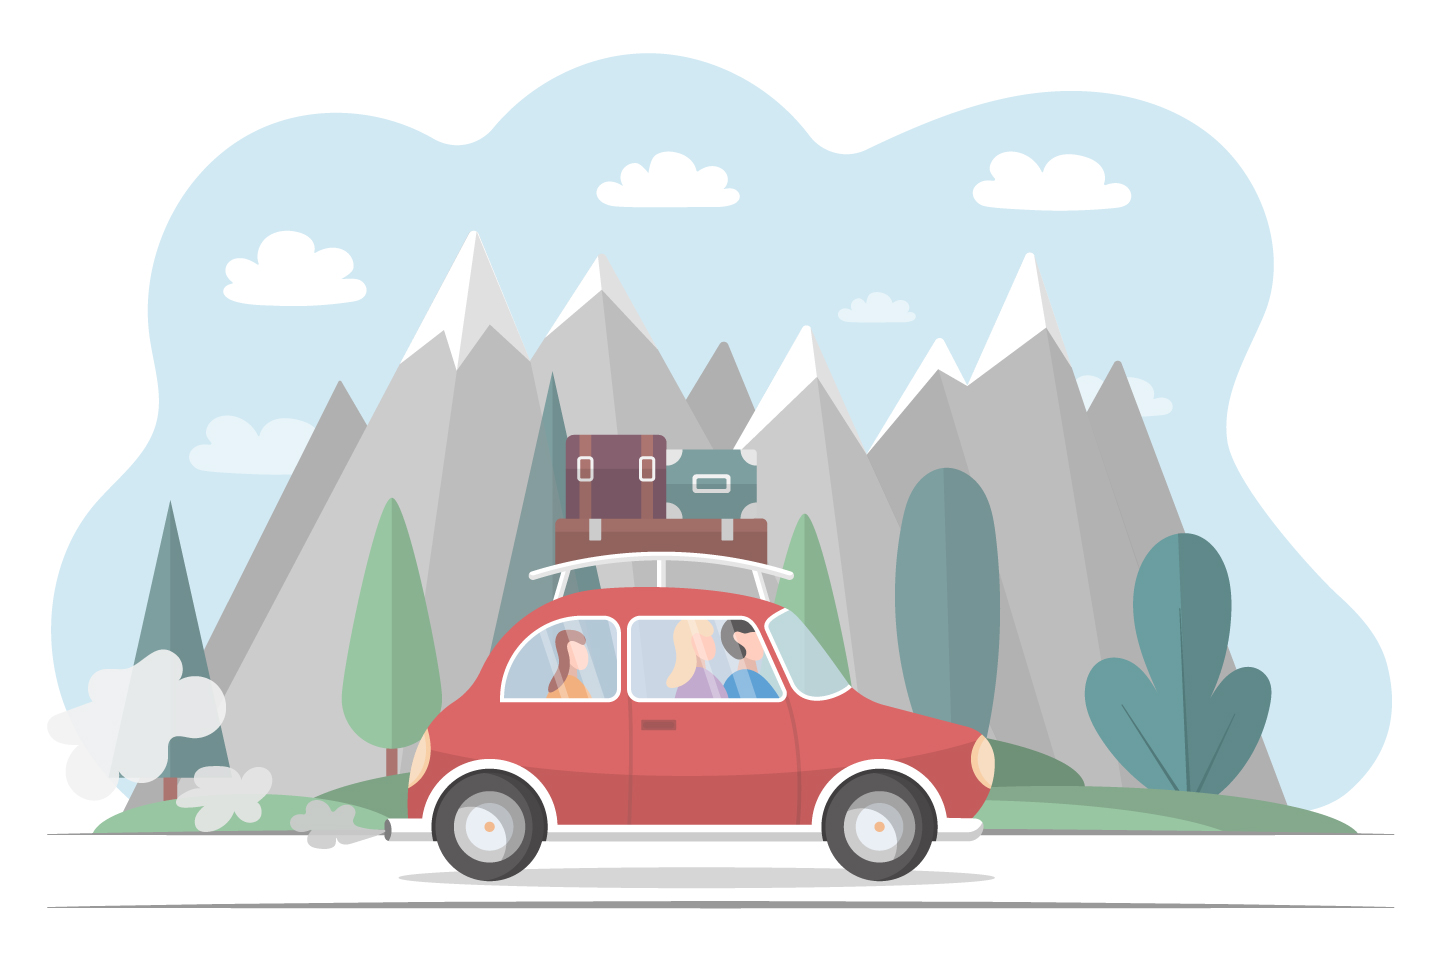 Family Travels by Car on Vacation Illustration